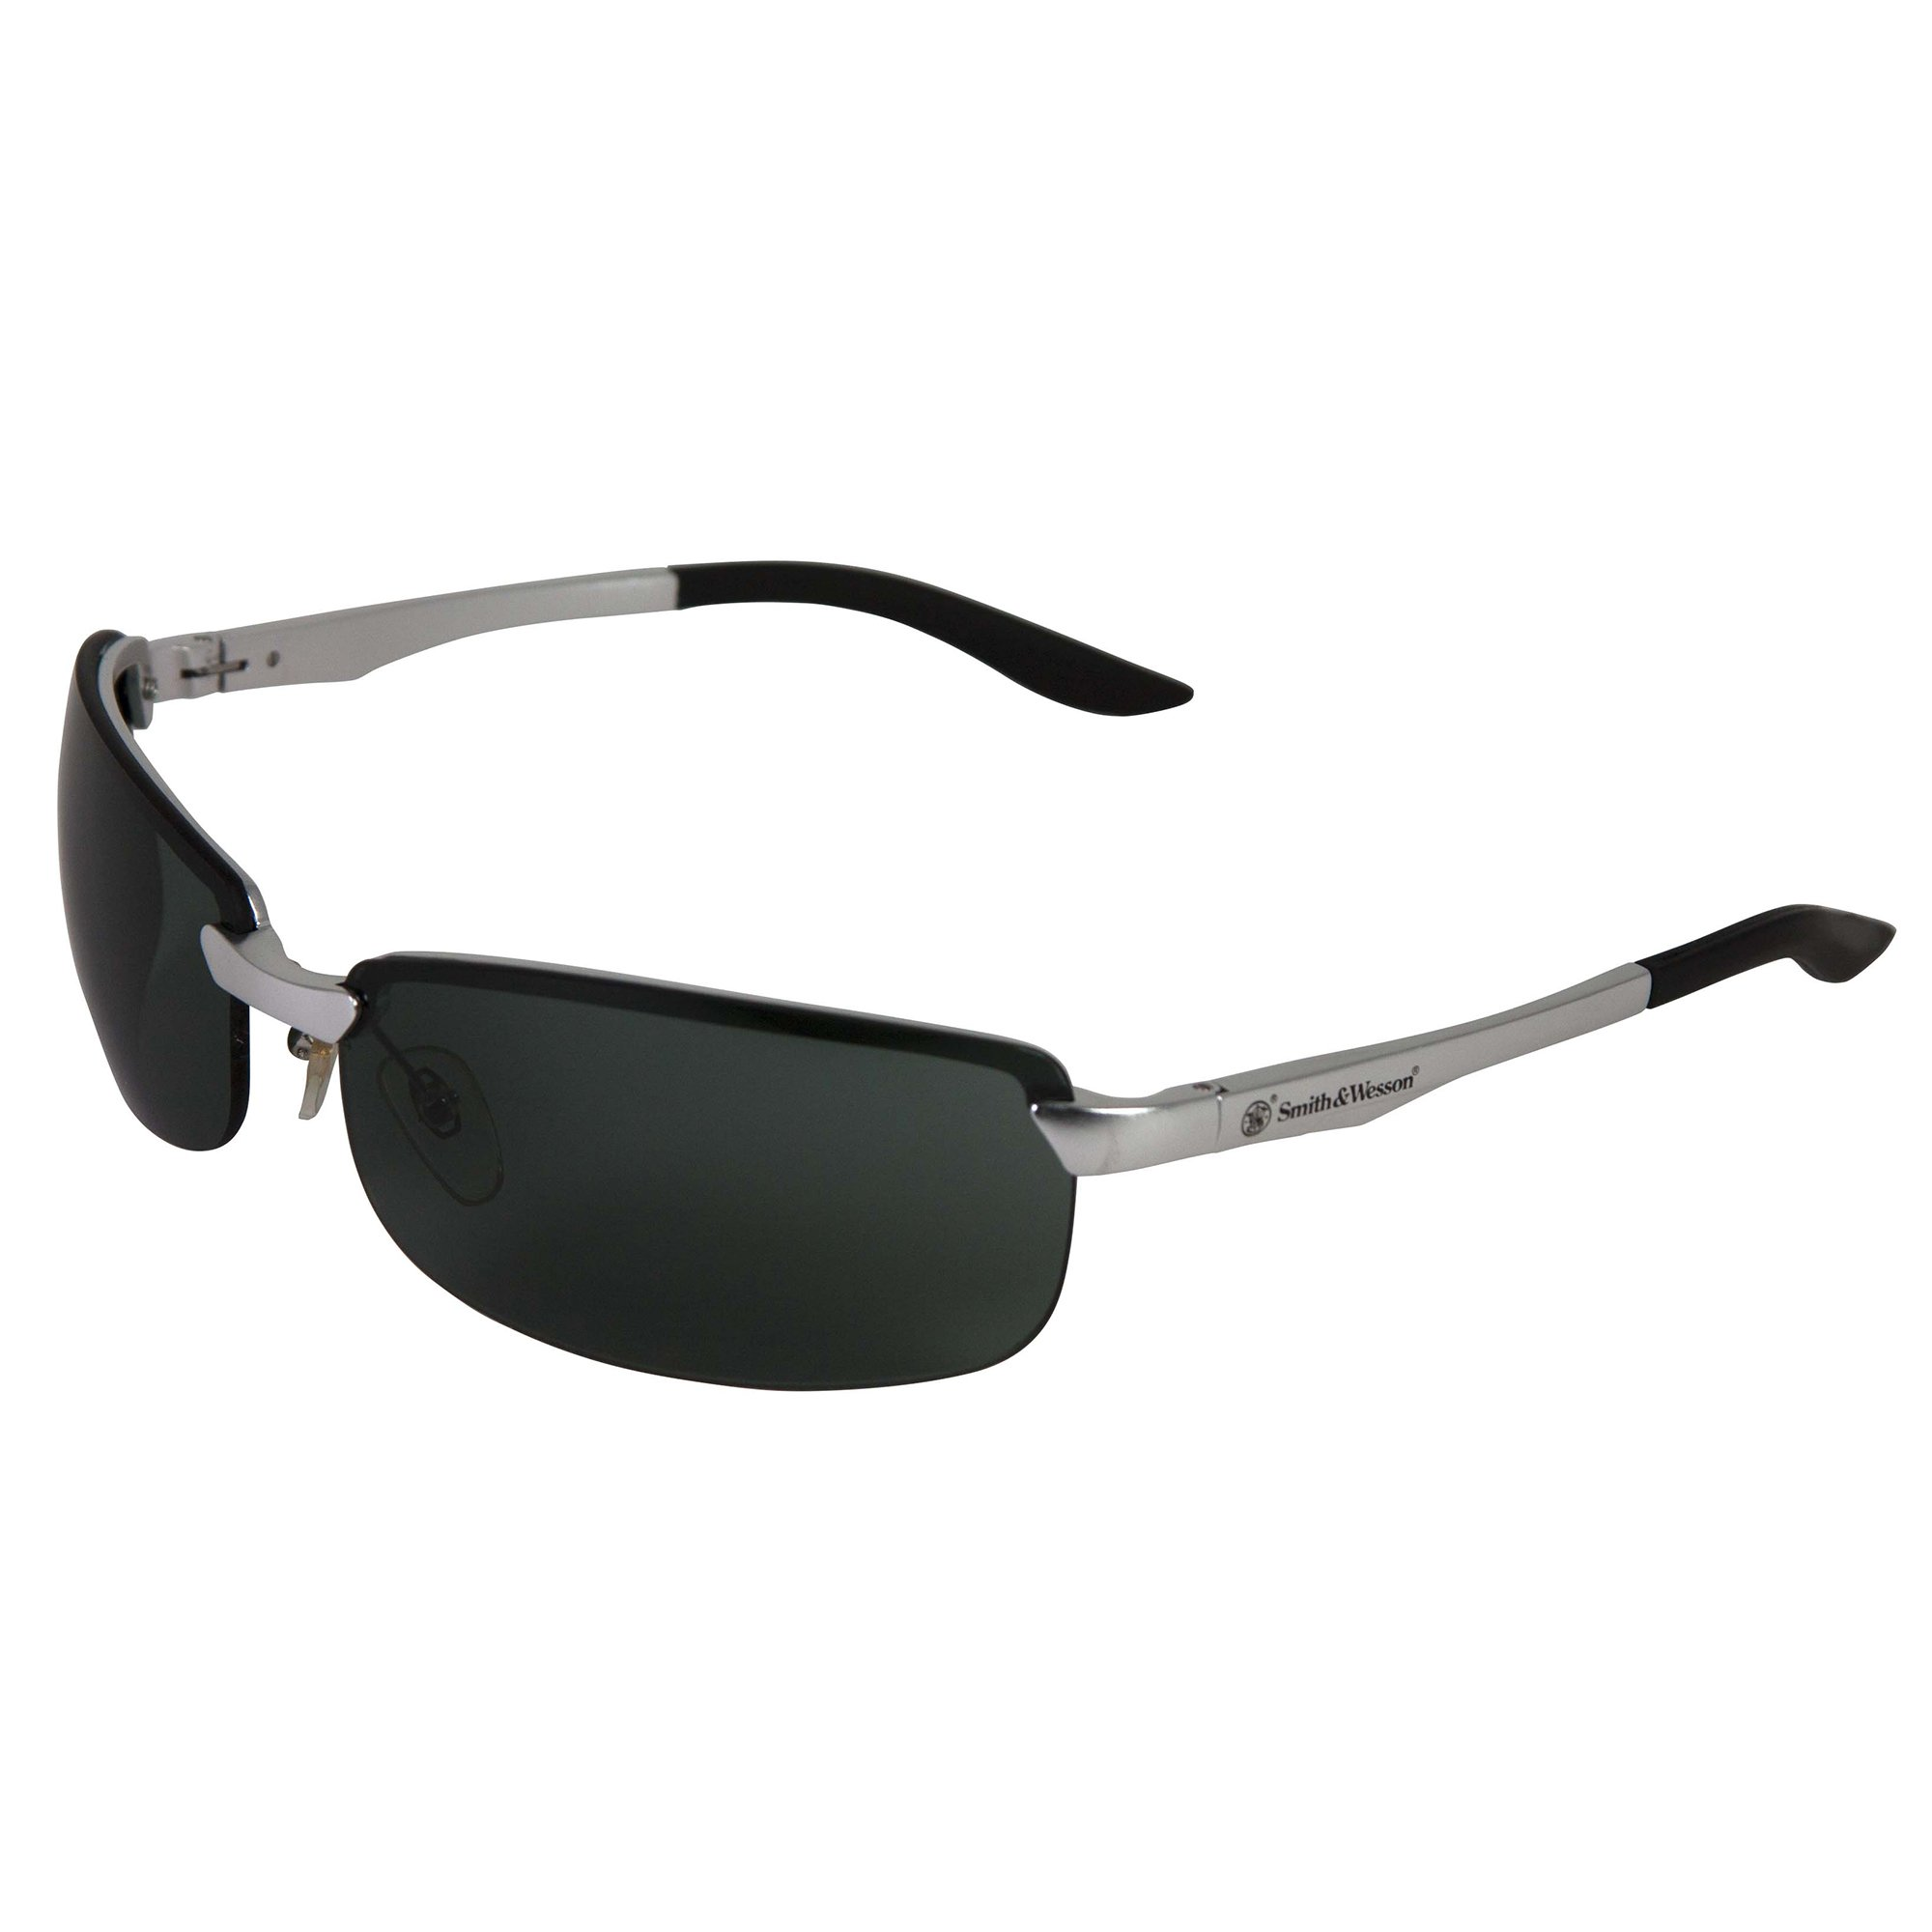 Smith & Wesson Airweight Safety Glasses (38481), Anti-Fog, Smoke Lens, Aluminum Frame